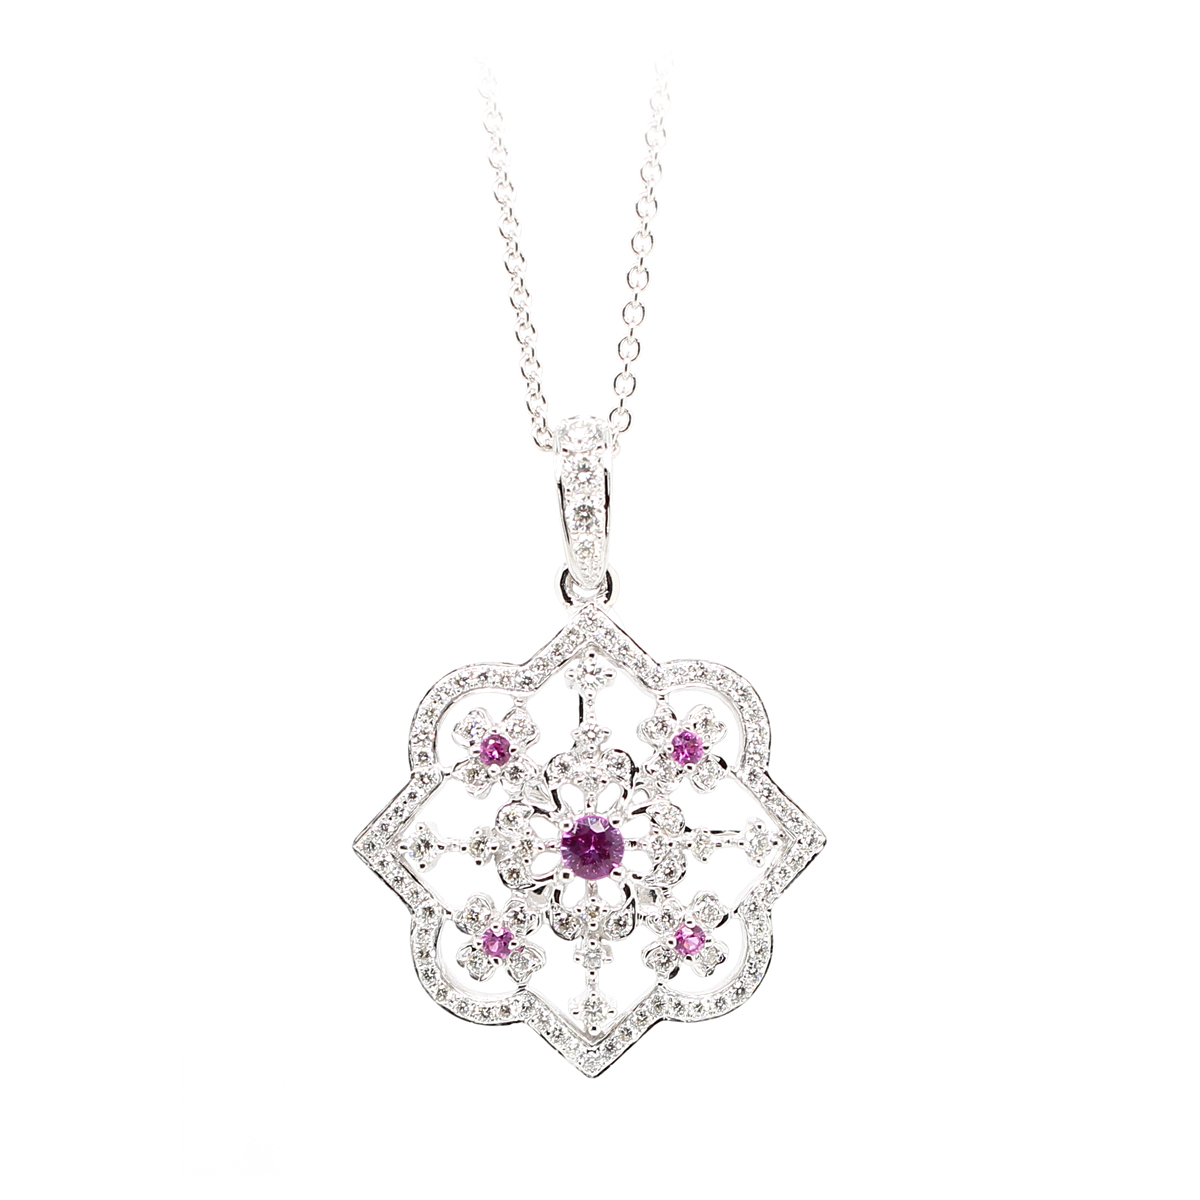 Charles Krypell 18 Karat White Gold Diamond & Pink Sapphire Pendant Necklace